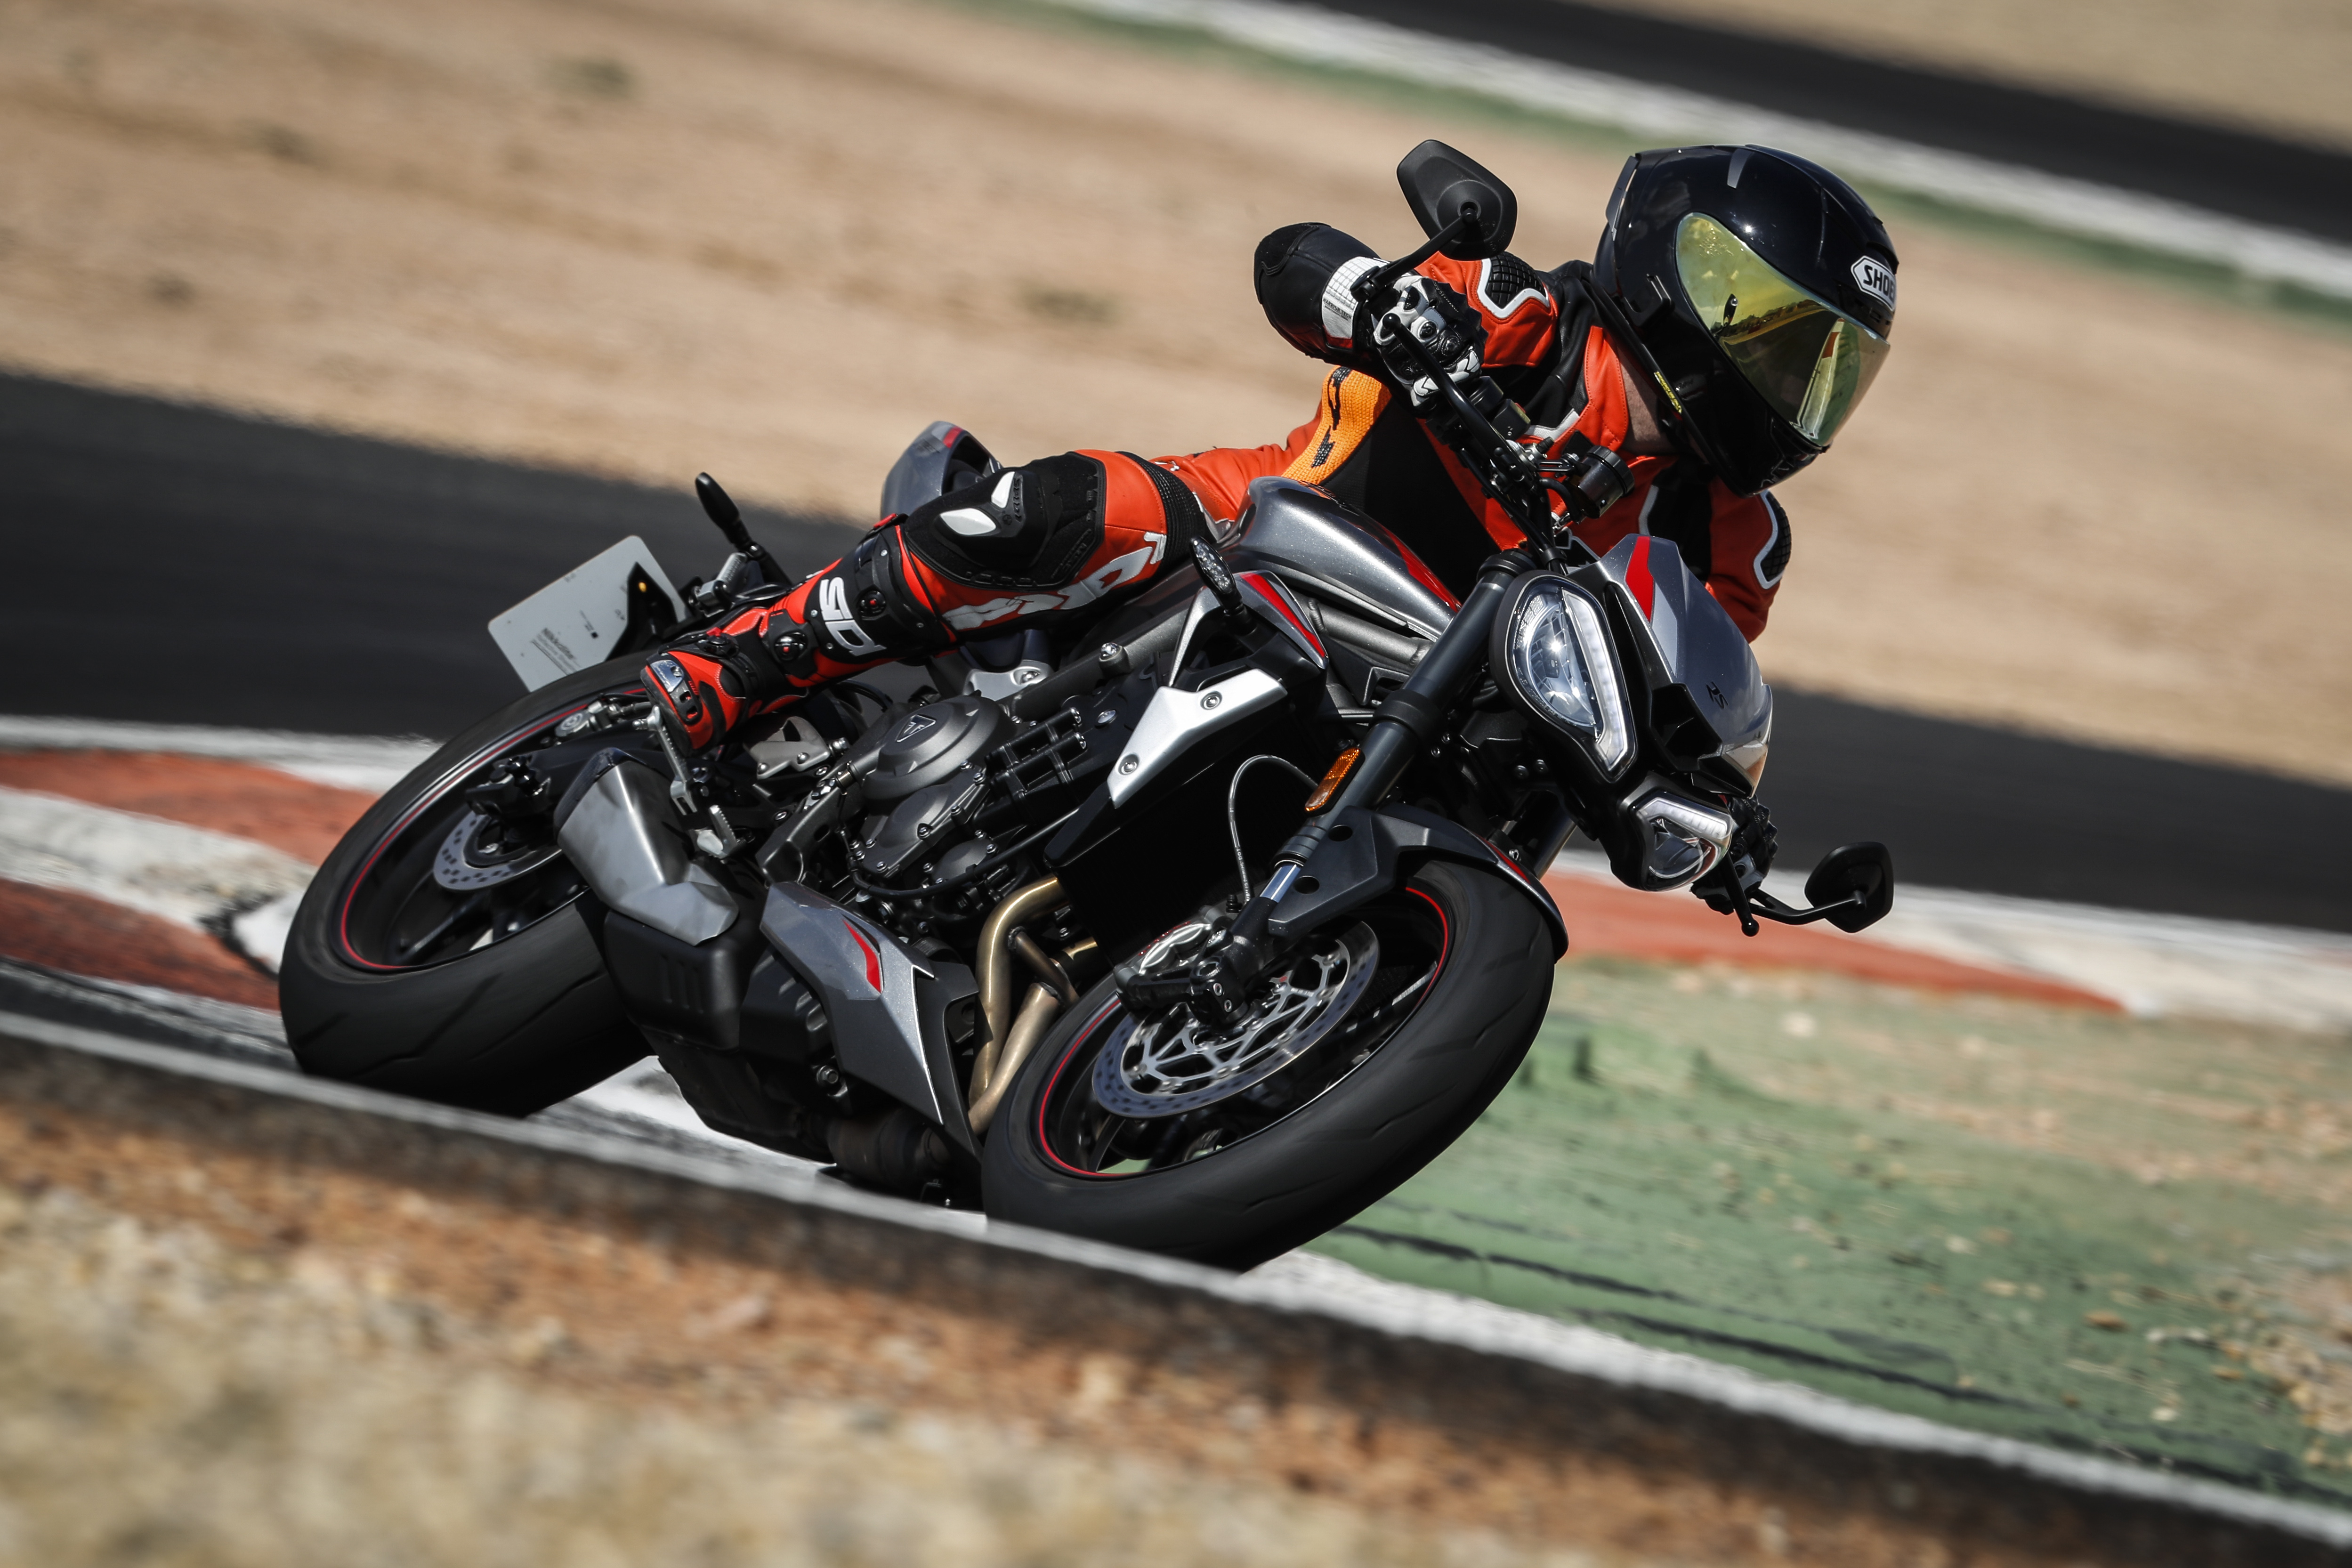 Used TRIUMPH STREET TRIPLE RS for sale in Bristol, South West